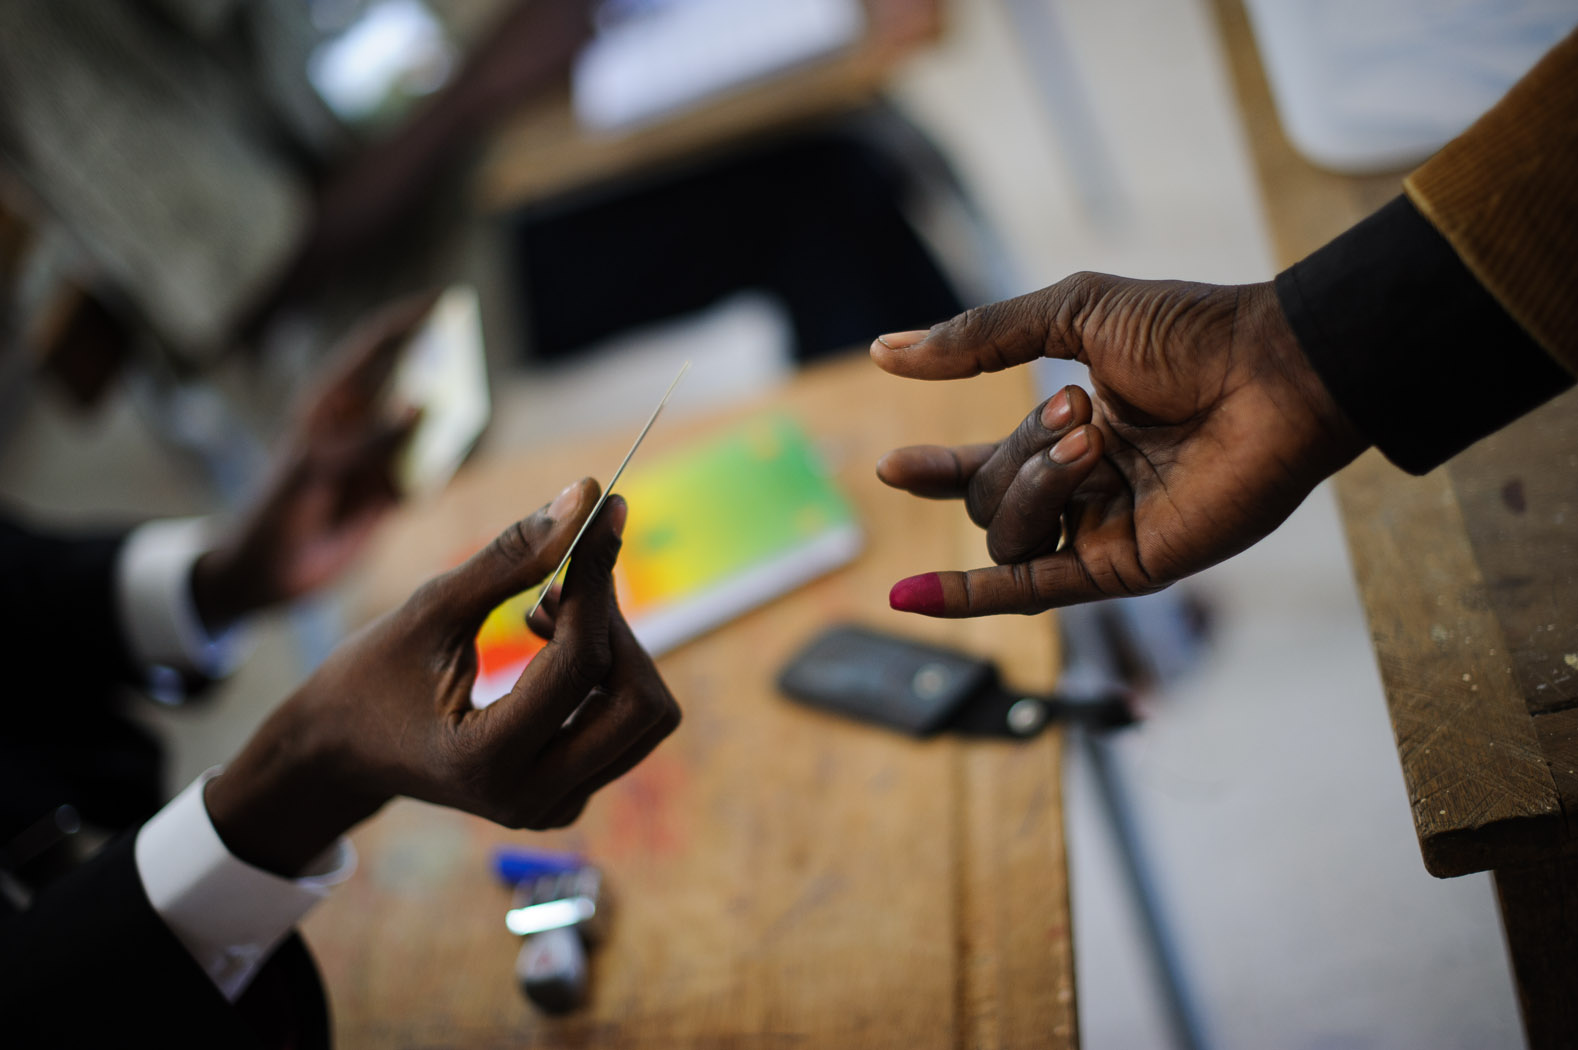 Those voting had their fingers stained with dye to prevent multiple votes.